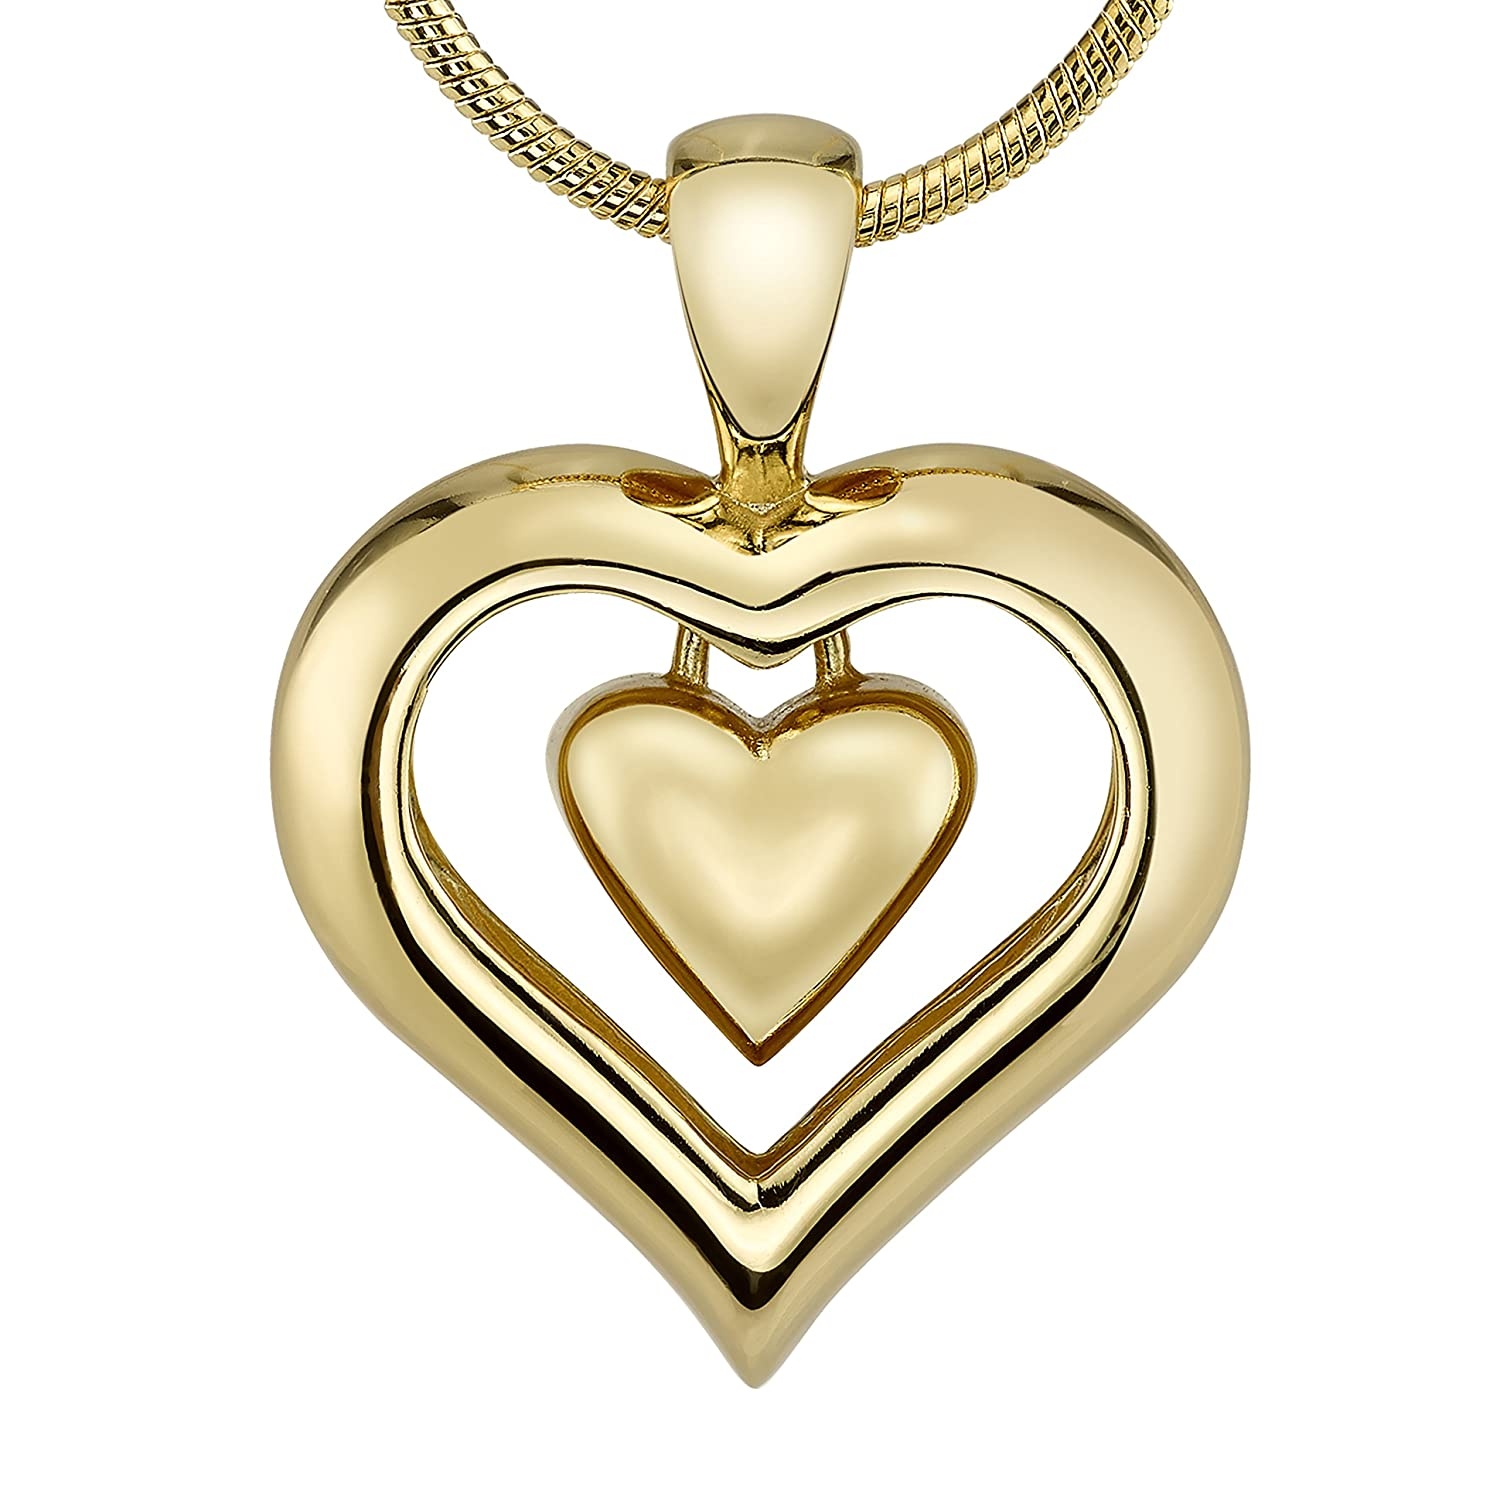 The Eternity Heart 18kt Gold Finish Cremation Jewelry Urn ...